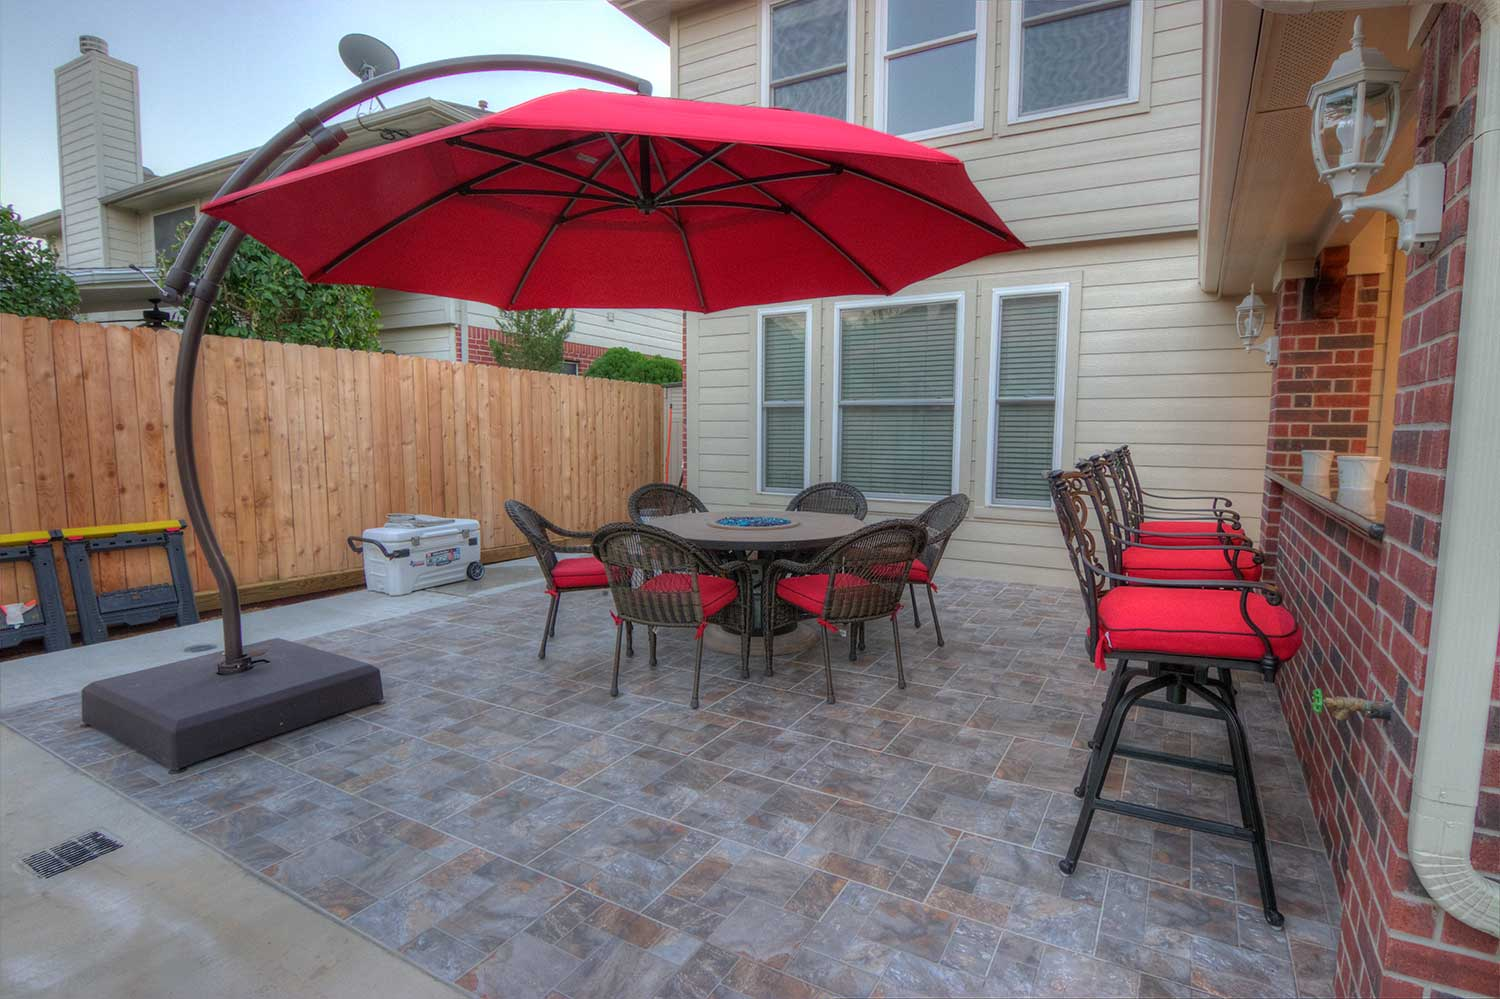 Gable Roof Patio Cover And Outdoor Kitchen Hhi Patio Covers